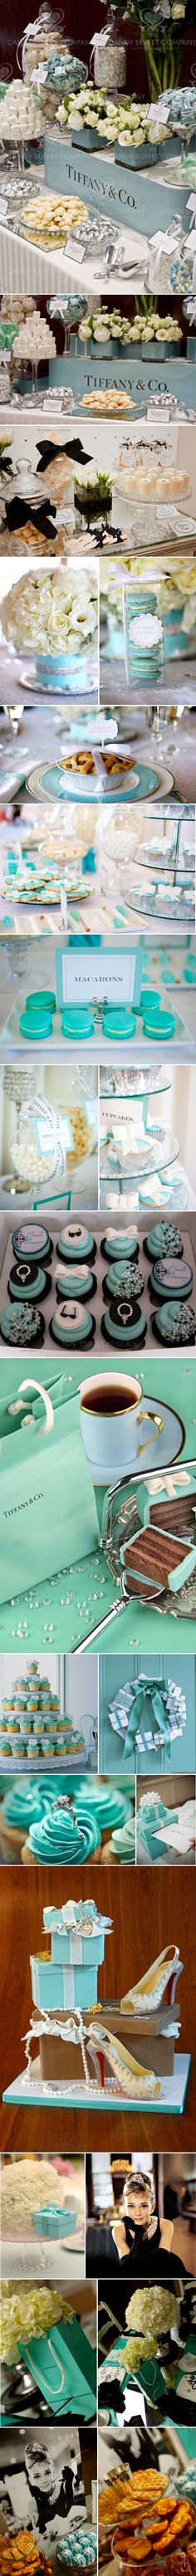 Tiffany bridal shower- adorable!